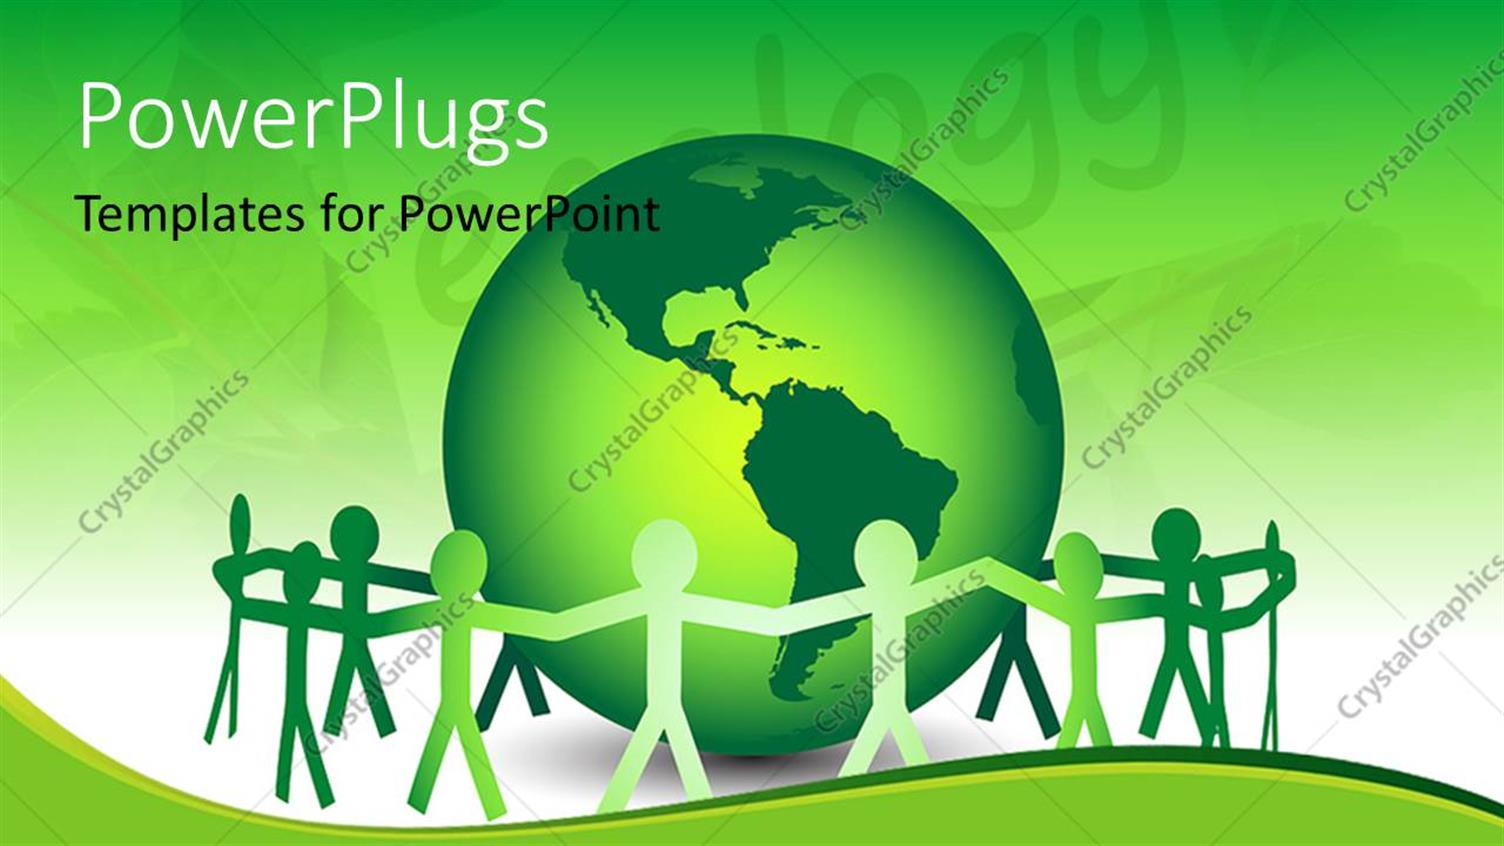 Eco & Green PowerPoint Templates for Presentations